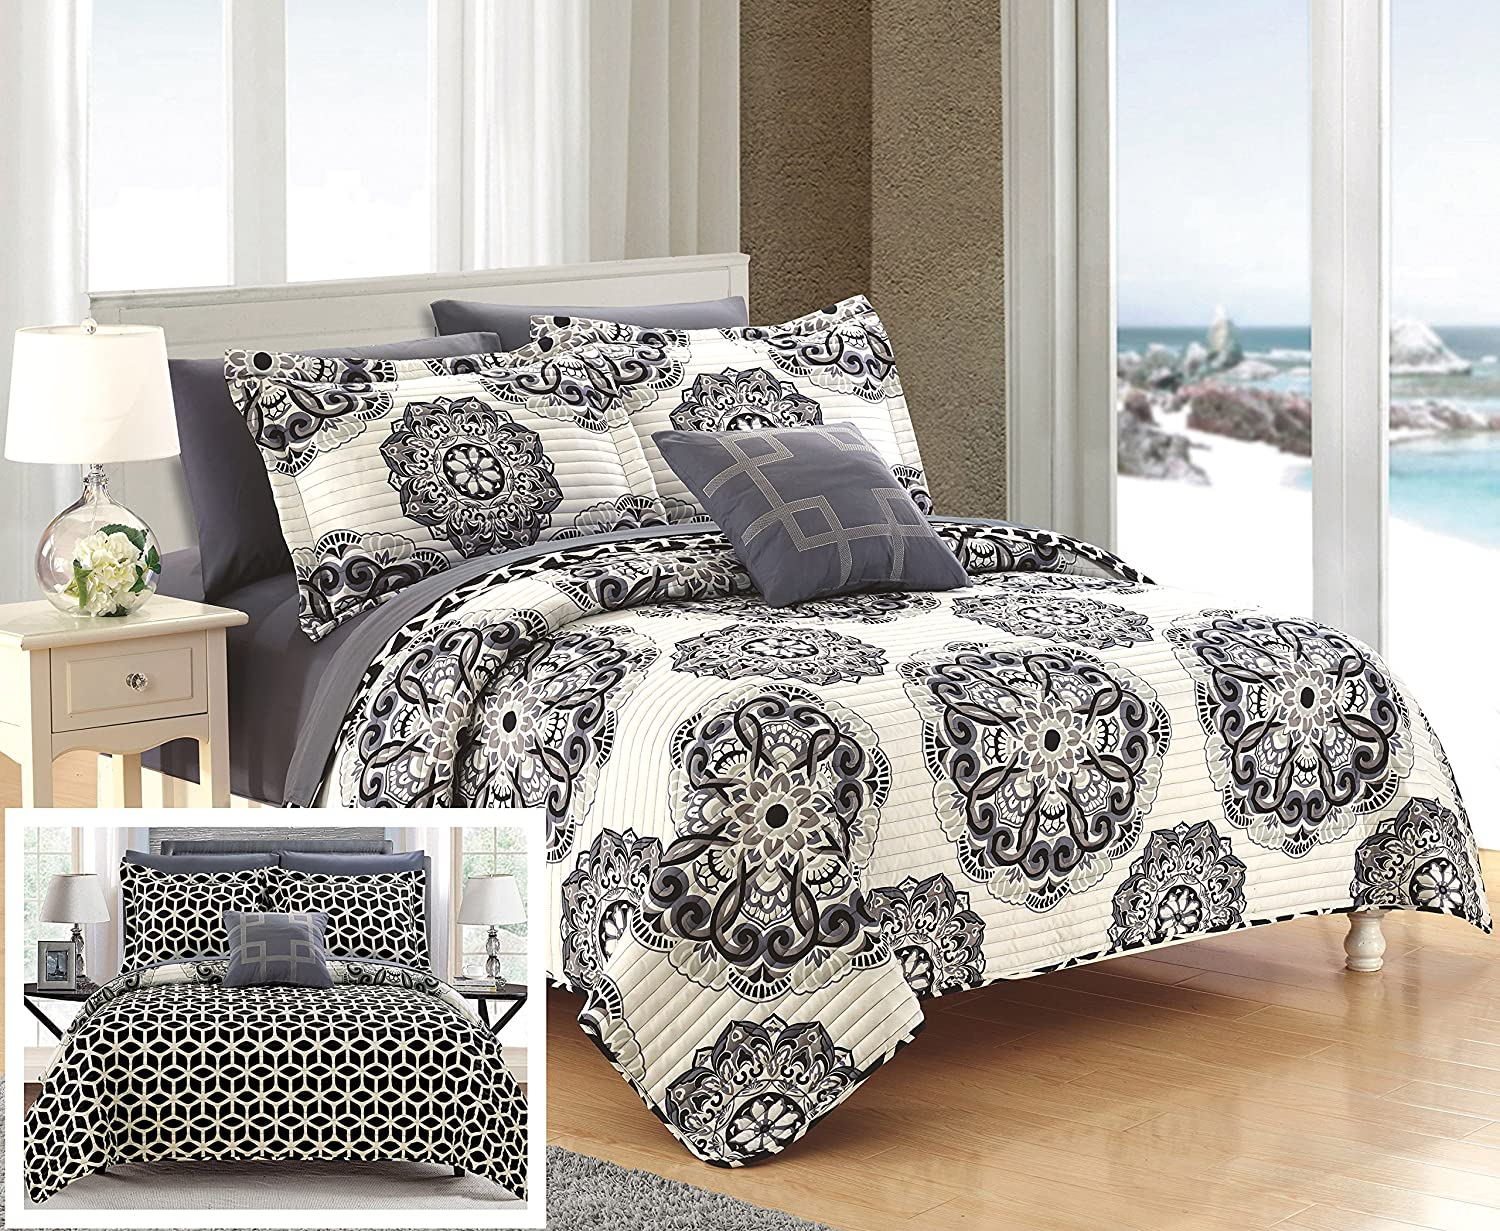 Chic Home Madrid 4 Piece Reversible Quilt Set Super Soft Microfiber Large Printed Medallion Design with Geometric Patterned Backing Bedding Set Black